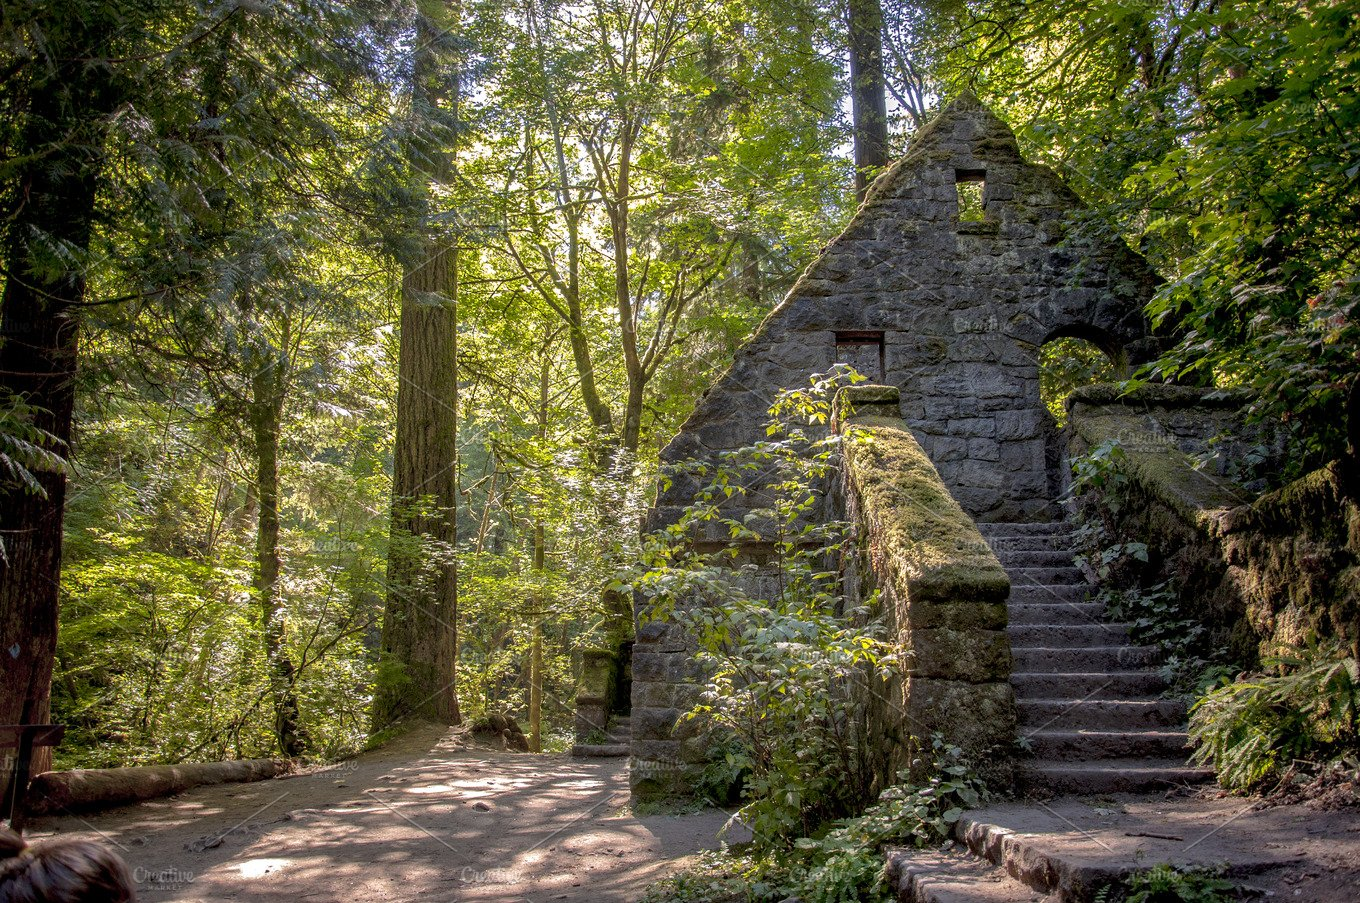 Abandoned building in the woods nature photos creative market - Houses woods nature integrated ...